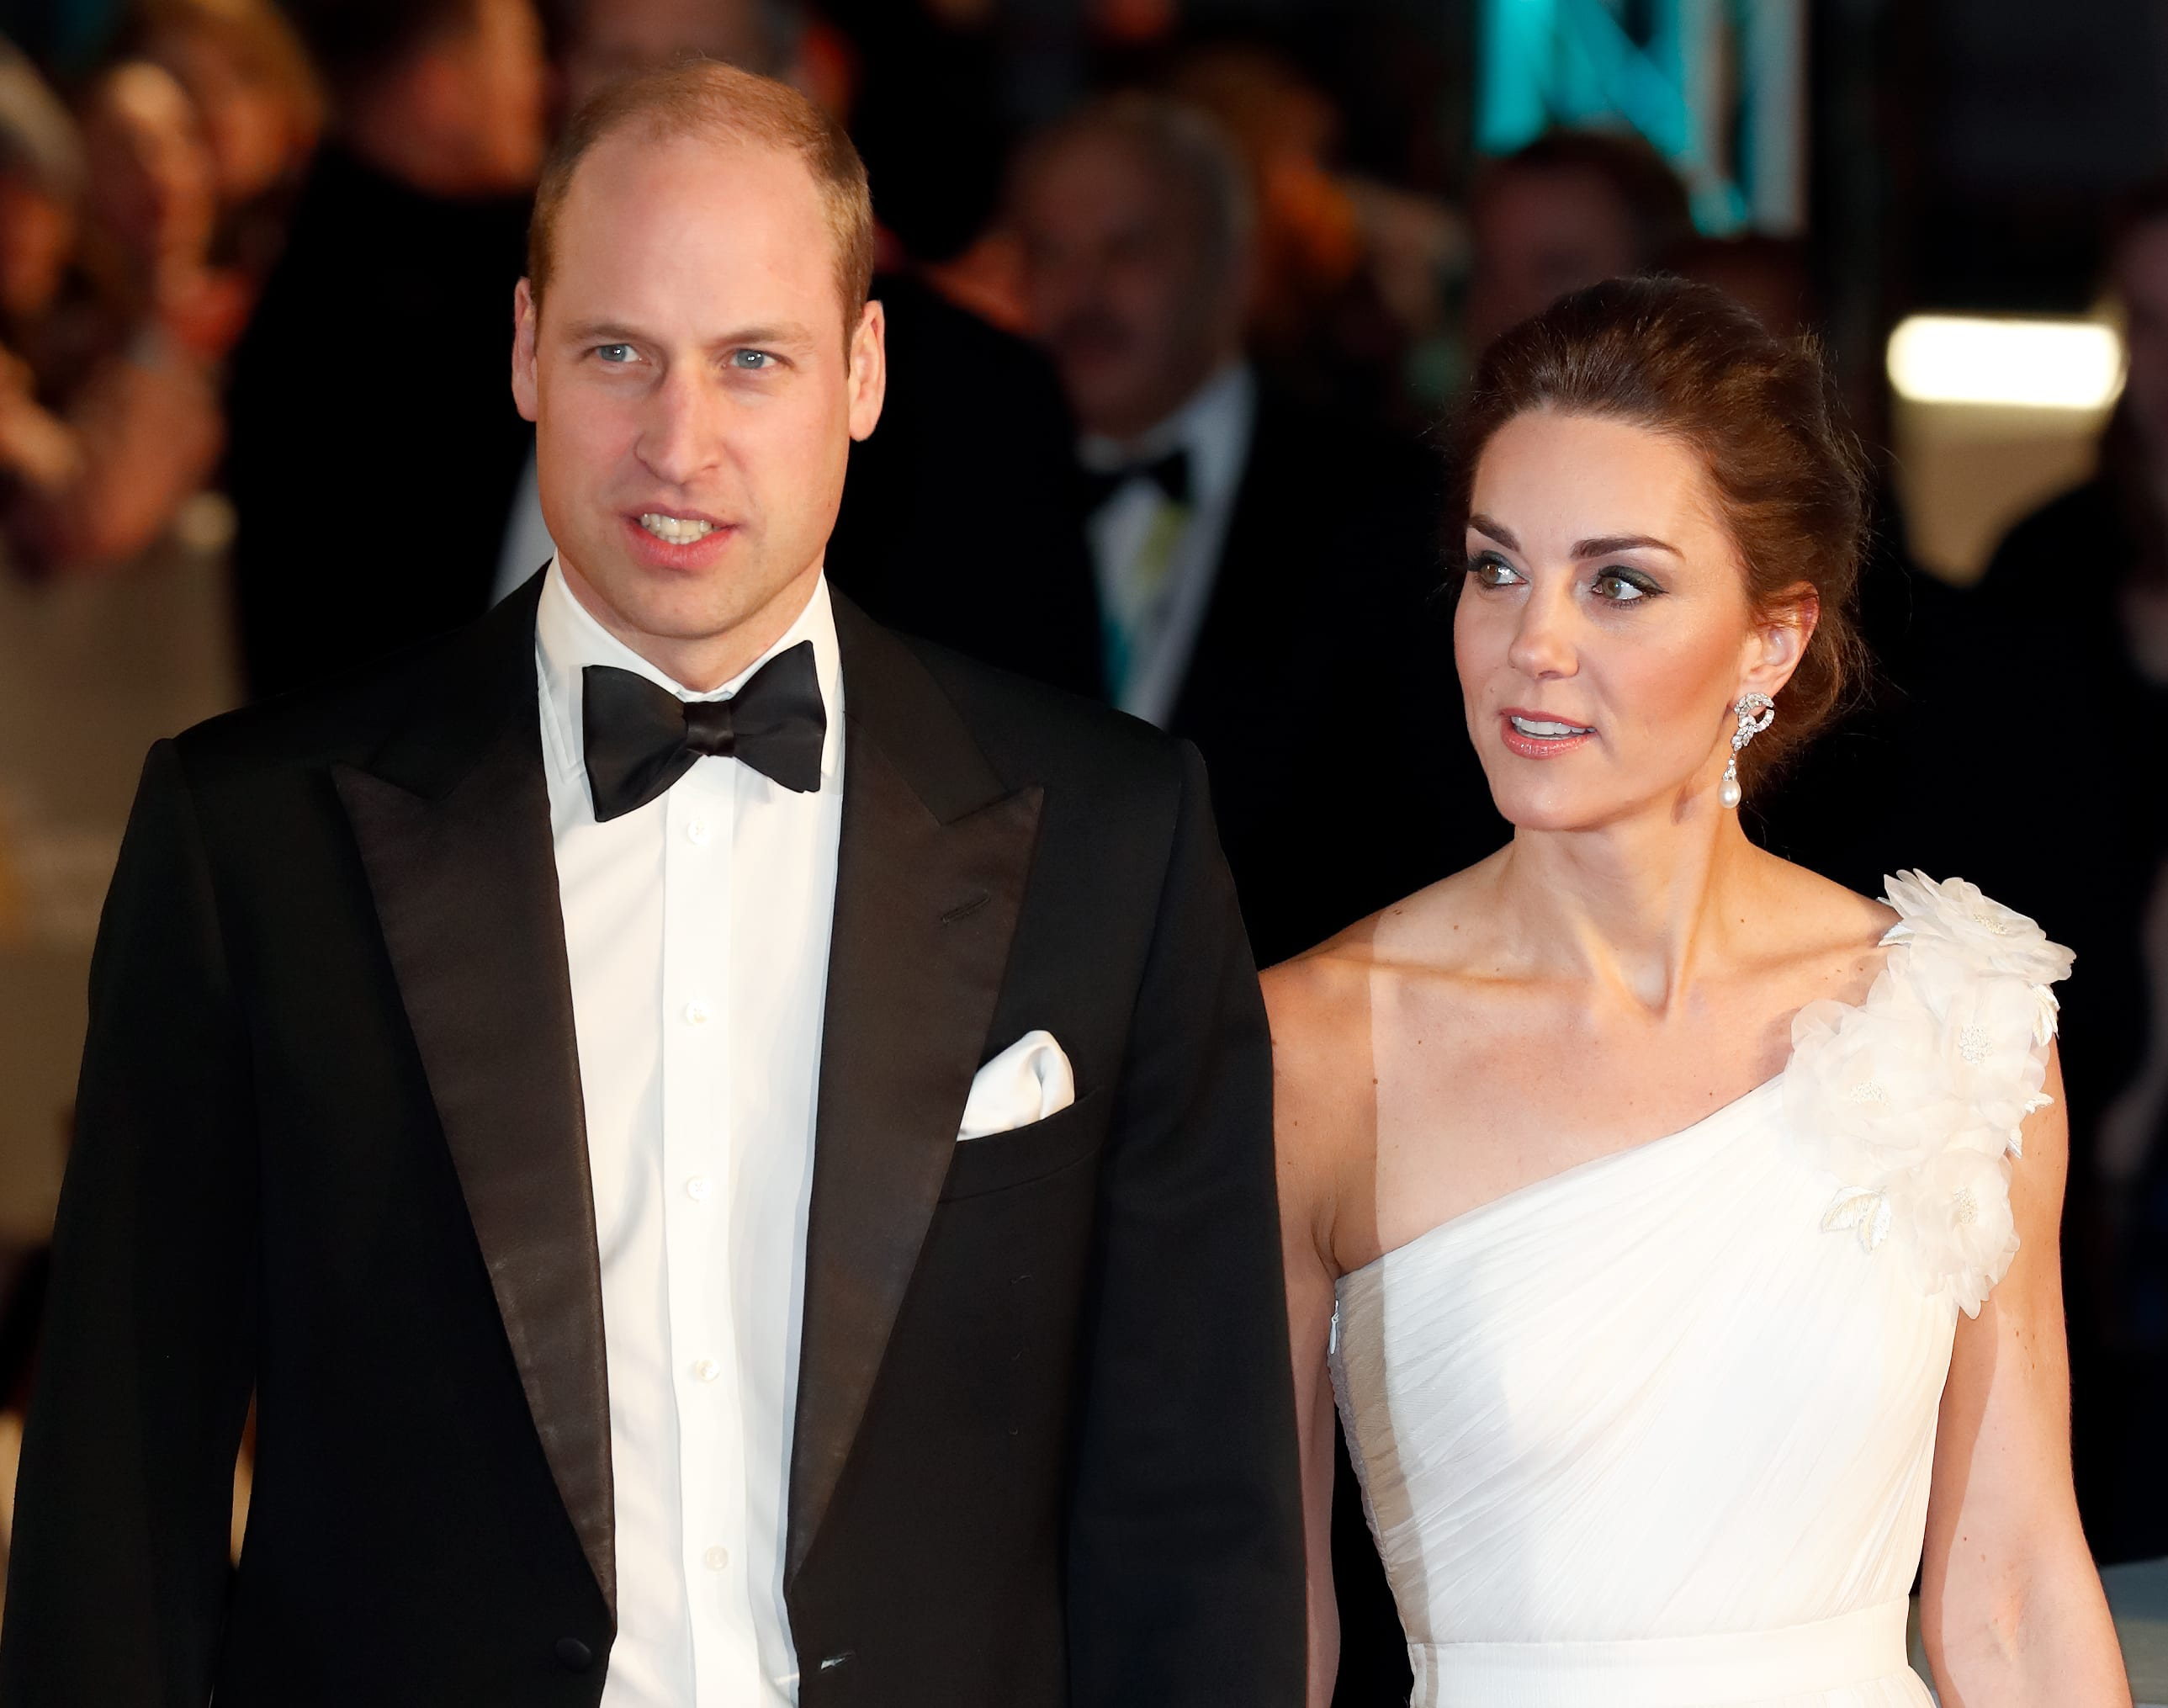 Prince William and Kate Did Host Prince Harry and Meghan at Anmer Hall